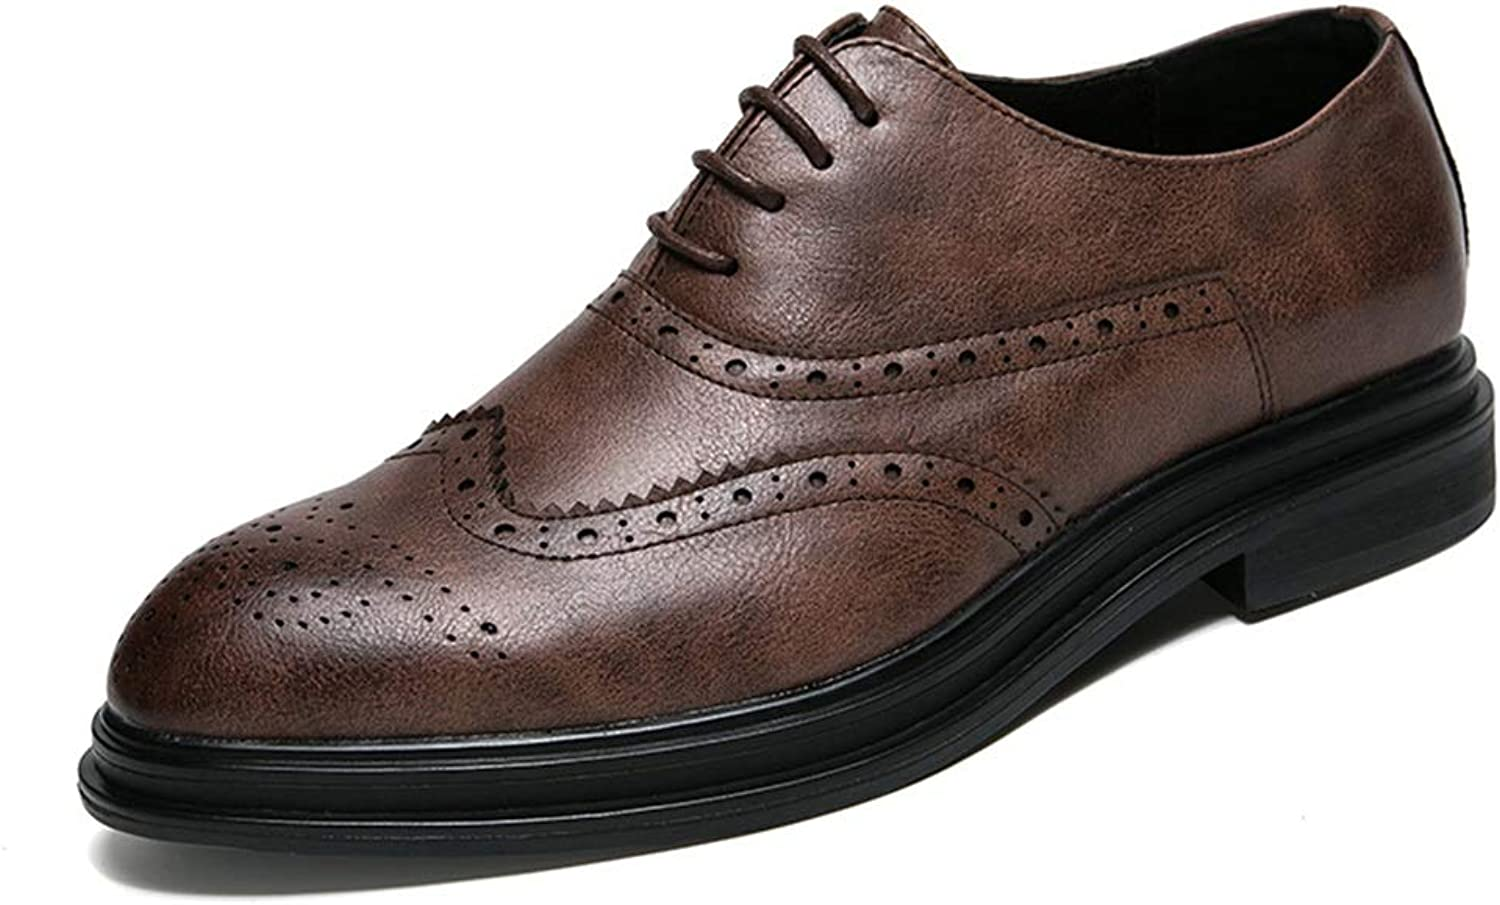 CHENDX shoes, Men's Casual Comfortable Trend Business Oxford Classic Carving Brogue shoes (Patent Leather Optional) (color   Brown, Size   8.5 UK)